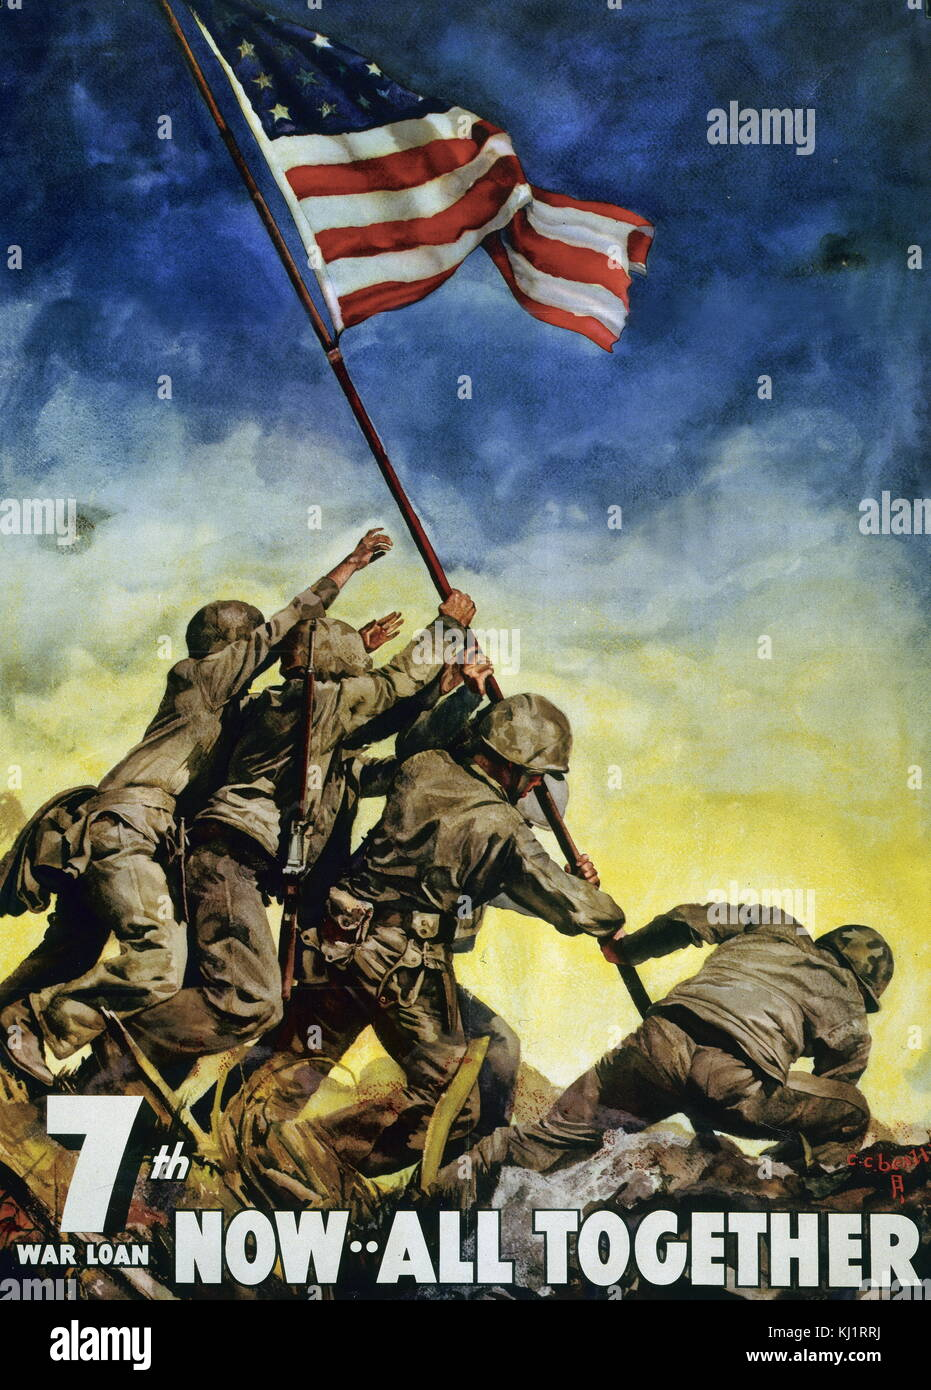 World War Two commemorative propaganda poster, showing U.S. Marines raising flag at Iwo Jima, during the advance - Stock Image